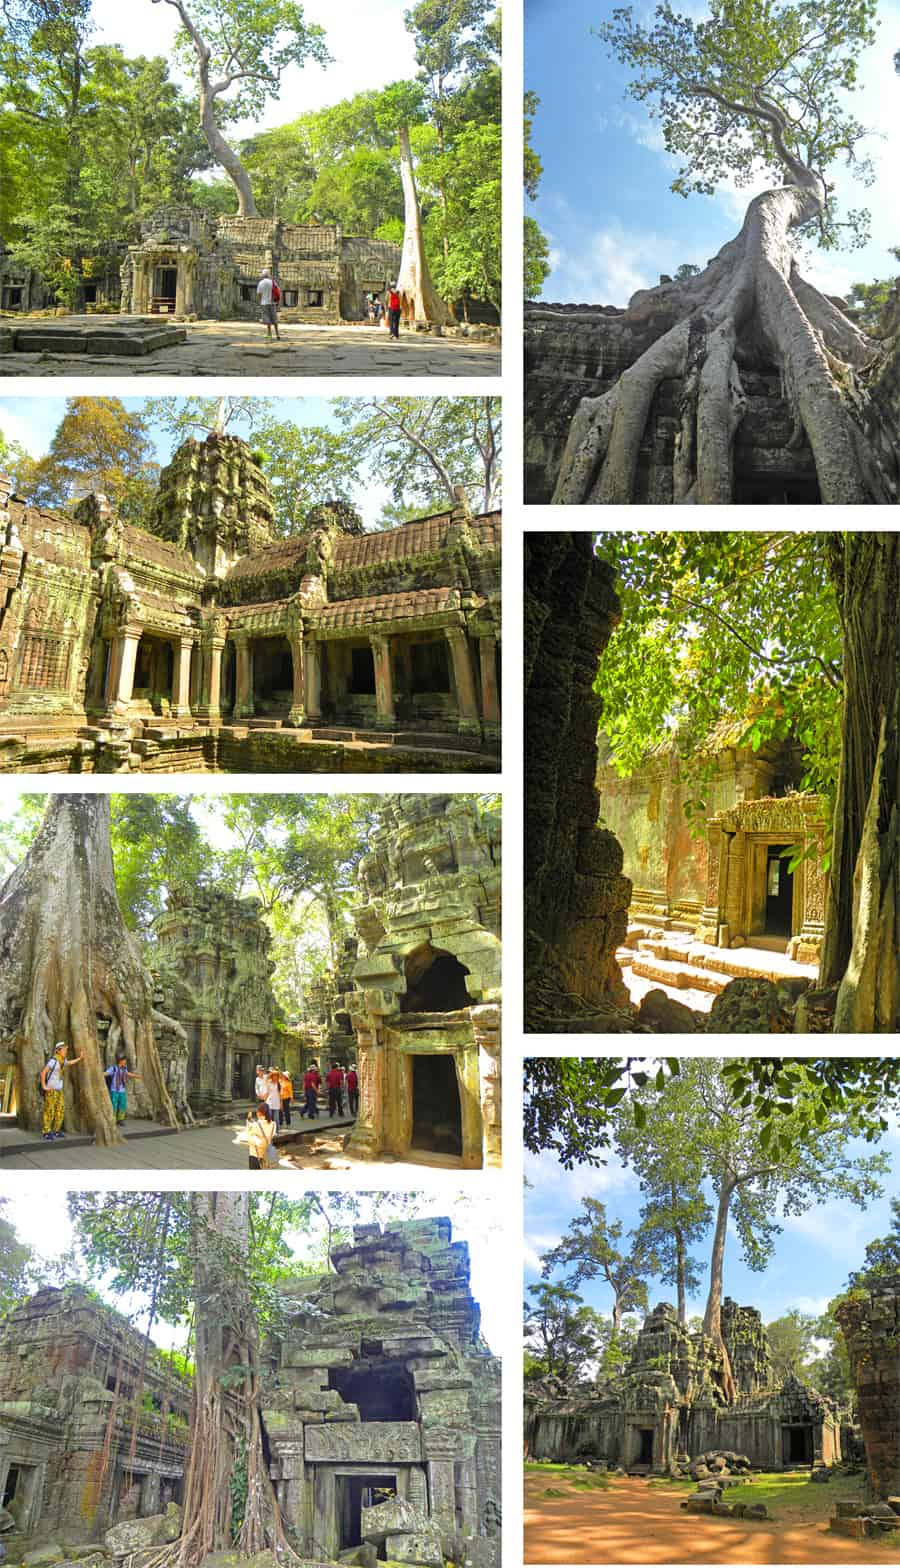 Ta Prohm, the tree temple, Angkor, Cambodia. 10 Temples you have to see in Angkor Archaeological Park